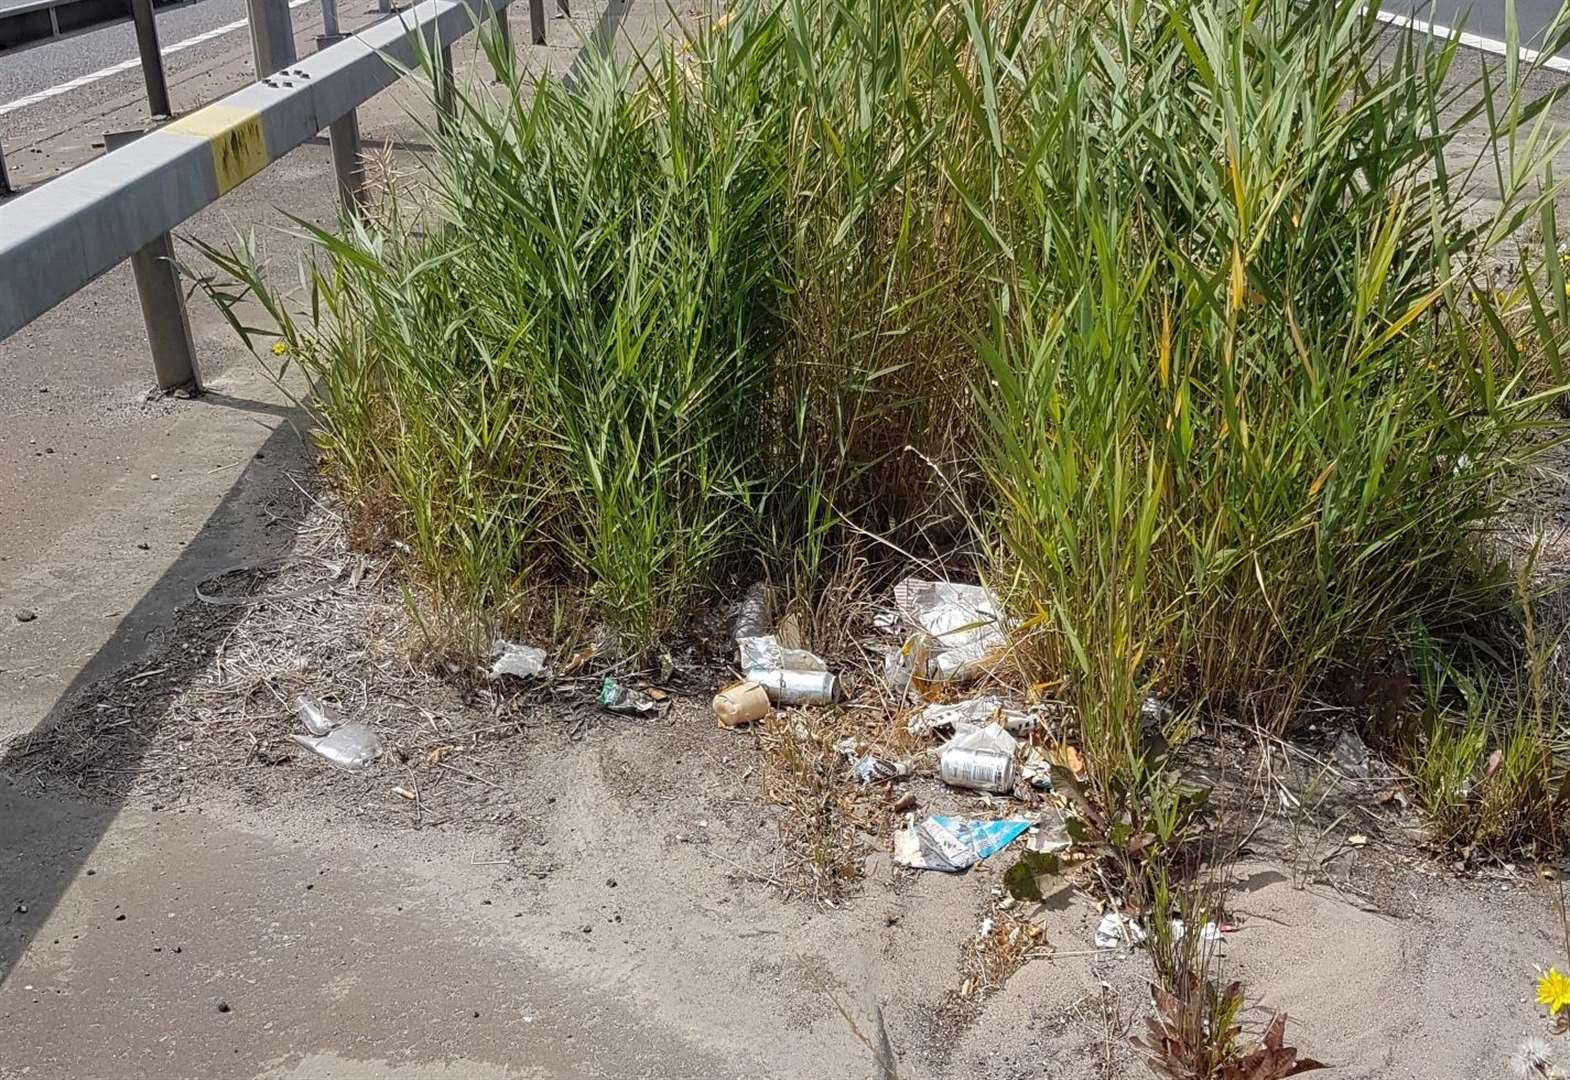 Litter dispute costs taxpayers thousands